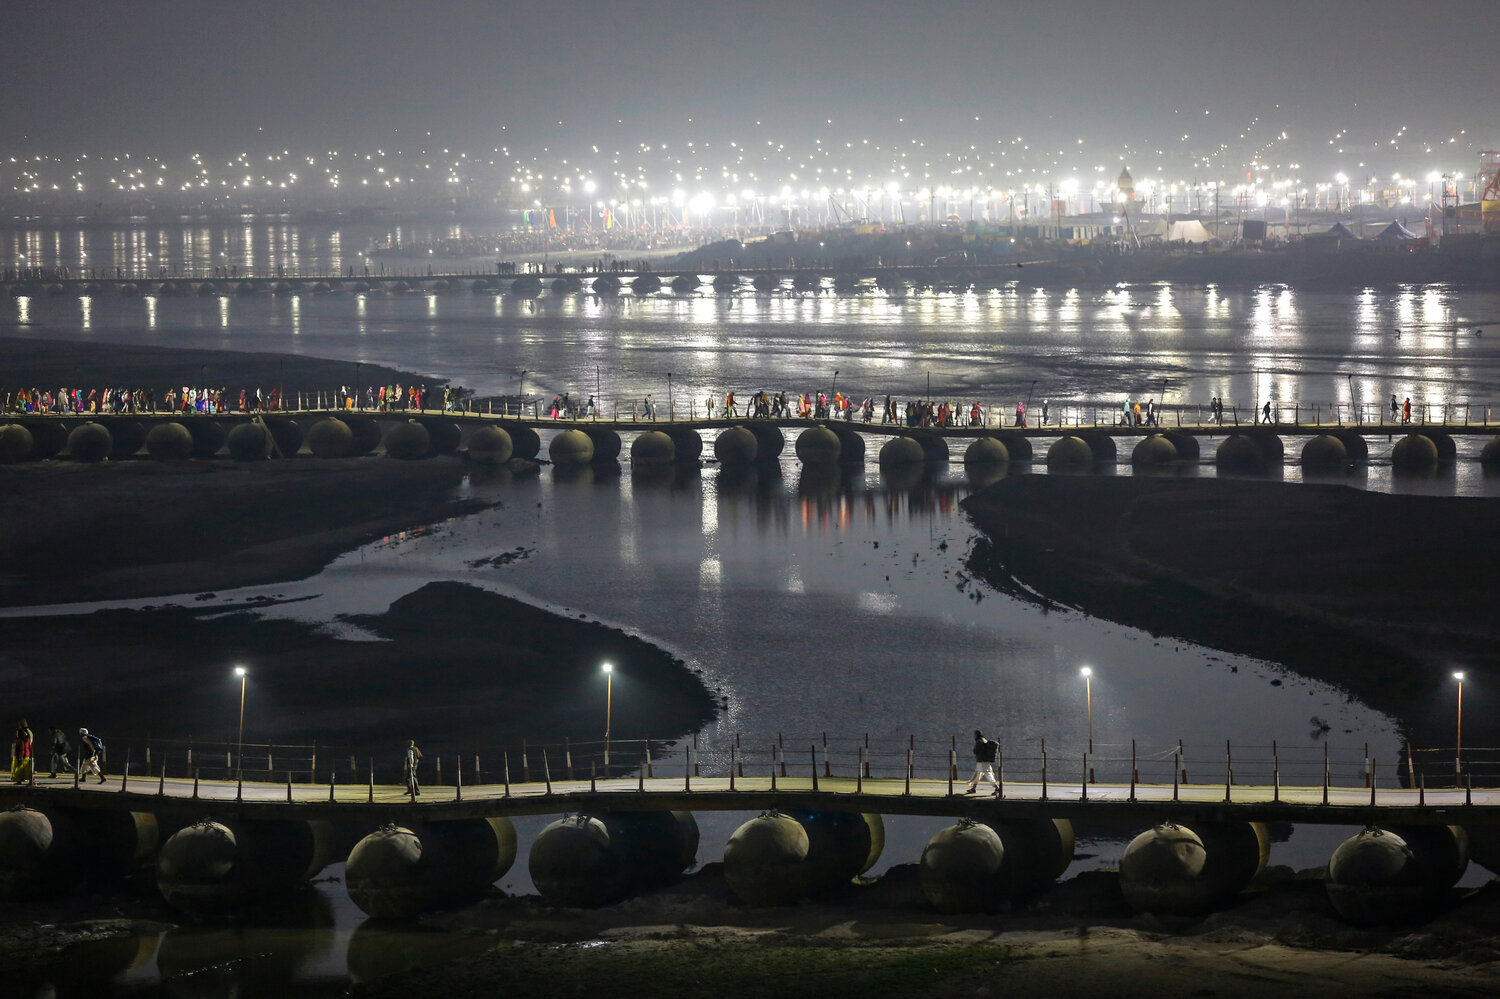 Indian Hindu pilgrims walk through a pontoon bridge before dawn at Sangam, the confluence of rivers Ganges, Yamuna, and mythical Saraswati during Magh Mela, a festival that attracts millions of pilgrims every year, in Prayagraj, in the northern Indian state of Uttar Pradesh on Jan. 30, 2020. (AP Photo/Altaf Qadri)